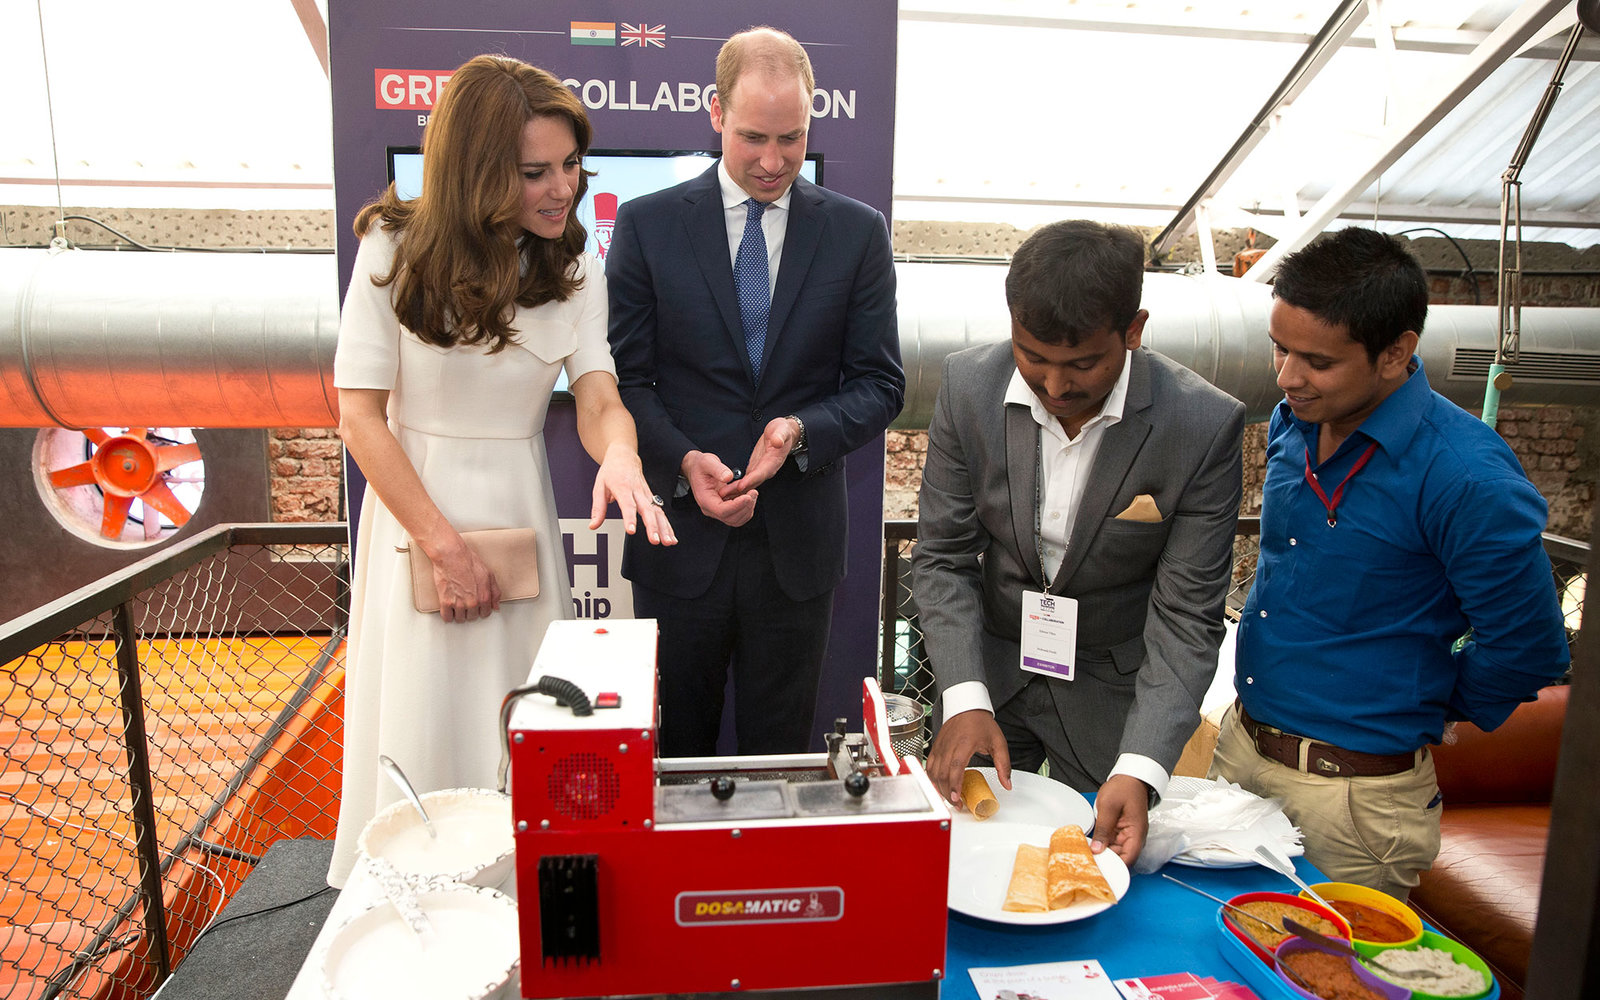 MUMBAI, INDIA - APRIL 10: Prince William, Duke of Cambridge and Catherine, Duchess of Cambridge meet young entrepreneurs during a visit to Mumbai on April 11, 2016 in Mumbai, India.   (Photo by Heathcliff O'Malley-Pool/Getty Images)